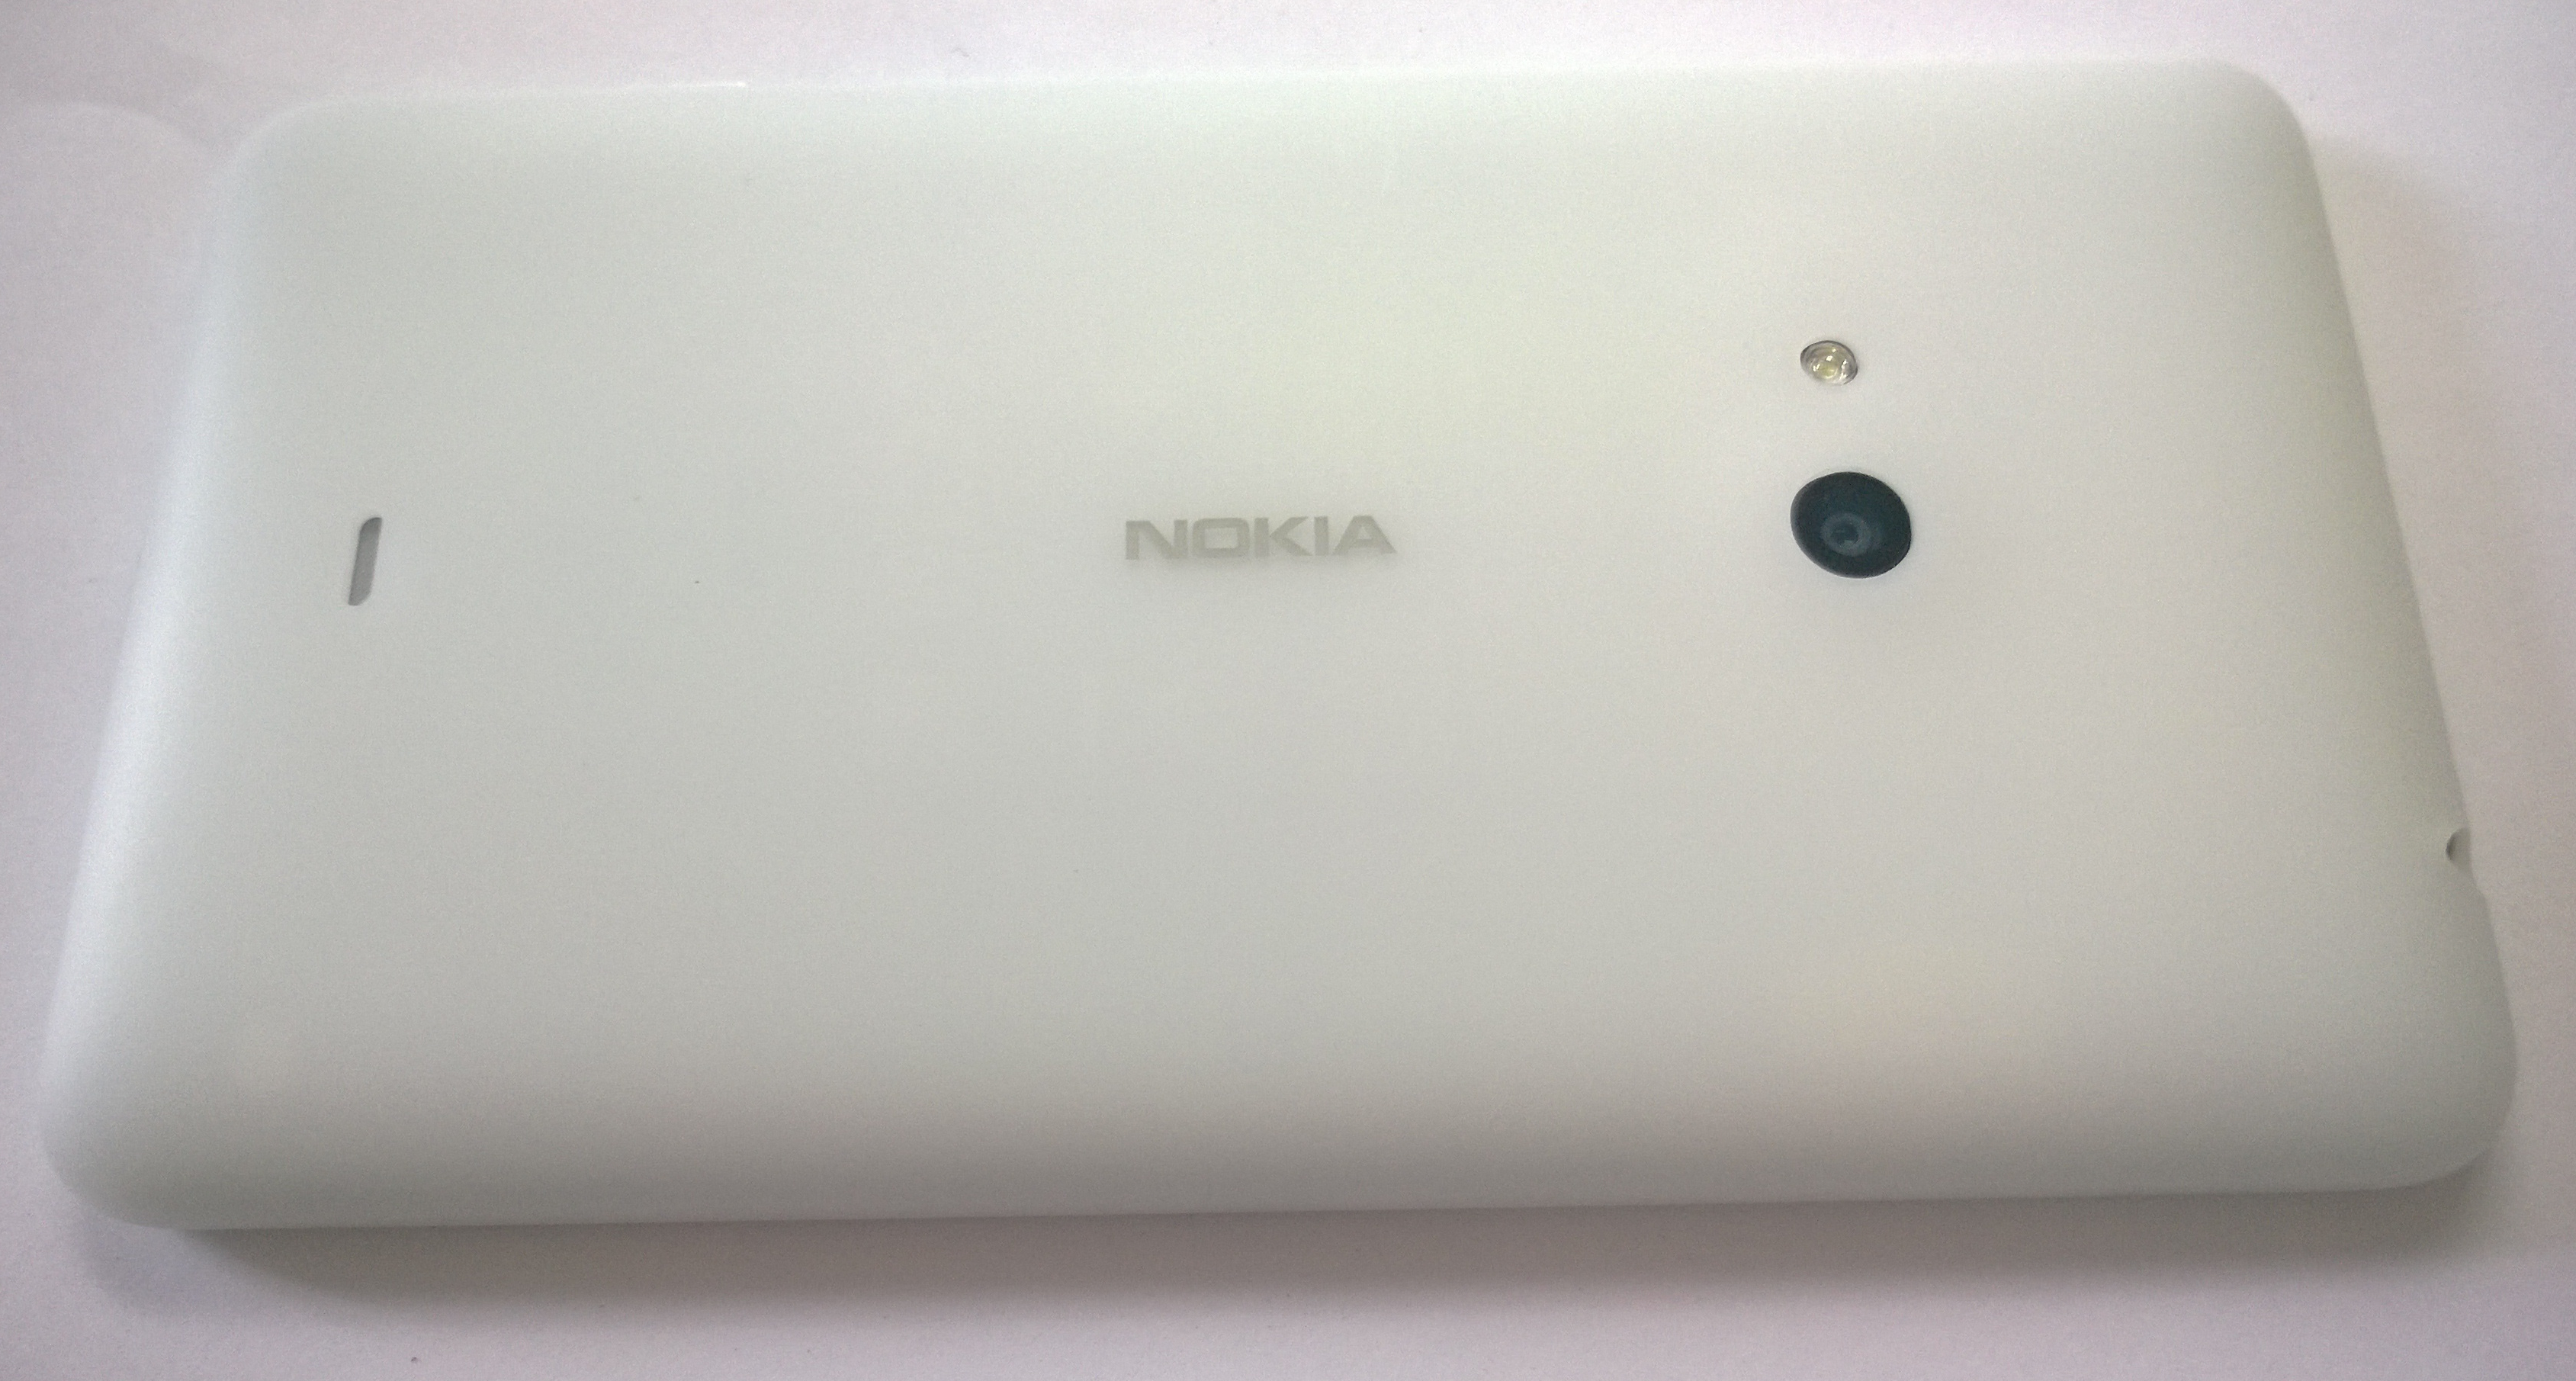 Lumia625 camera Nokia Lumia 625 review: 4G saves the day, but the 4.7 display disappoints